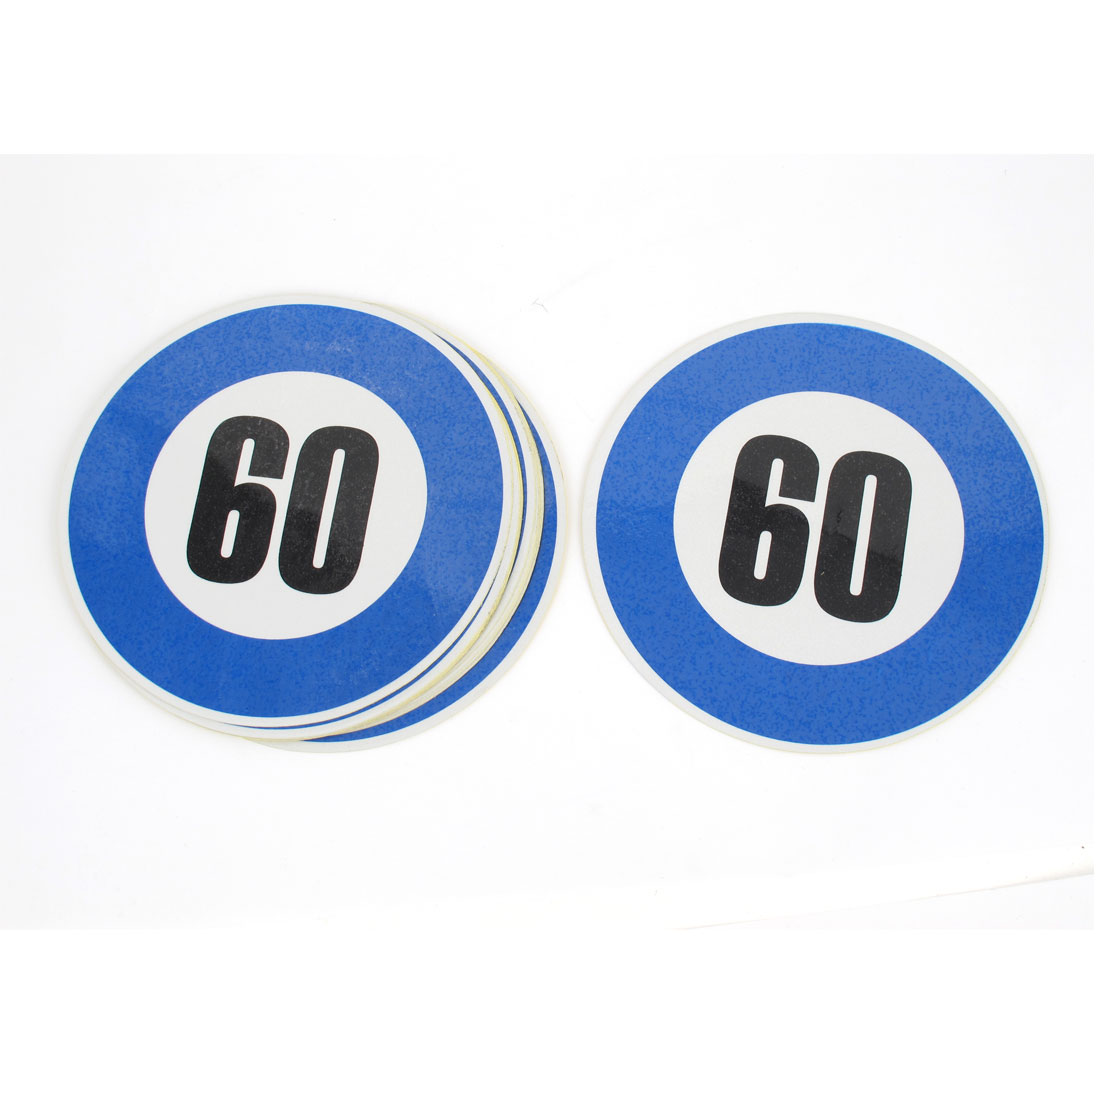 10 Pcs Car Auto 60KM Pattern Plastic Reflective Sticker Decor Blue Black